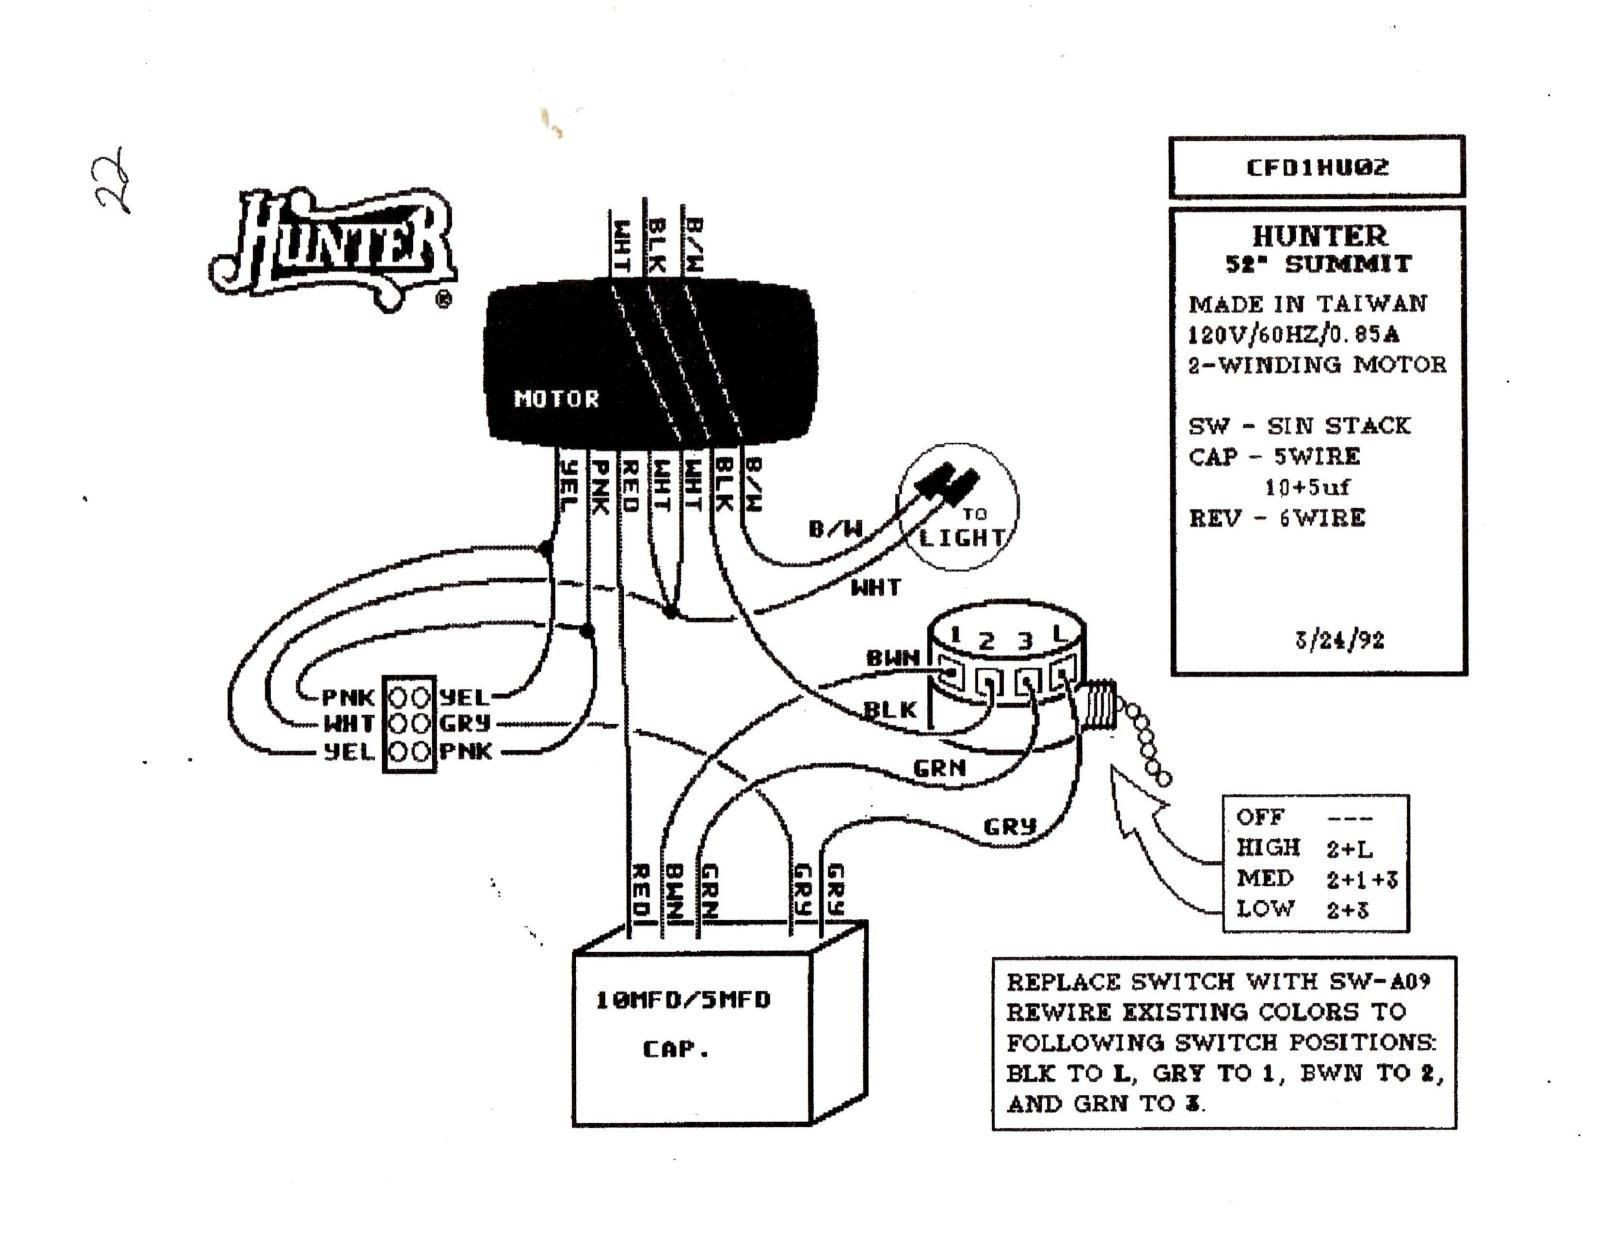 wiring diagram for hunter ceiling fan with light Collection-Wiring Diagram for Ceiling Fan Light Kit Fresh Wiring Diagram for Hunter Ceiling Fan Light Kit 17-n